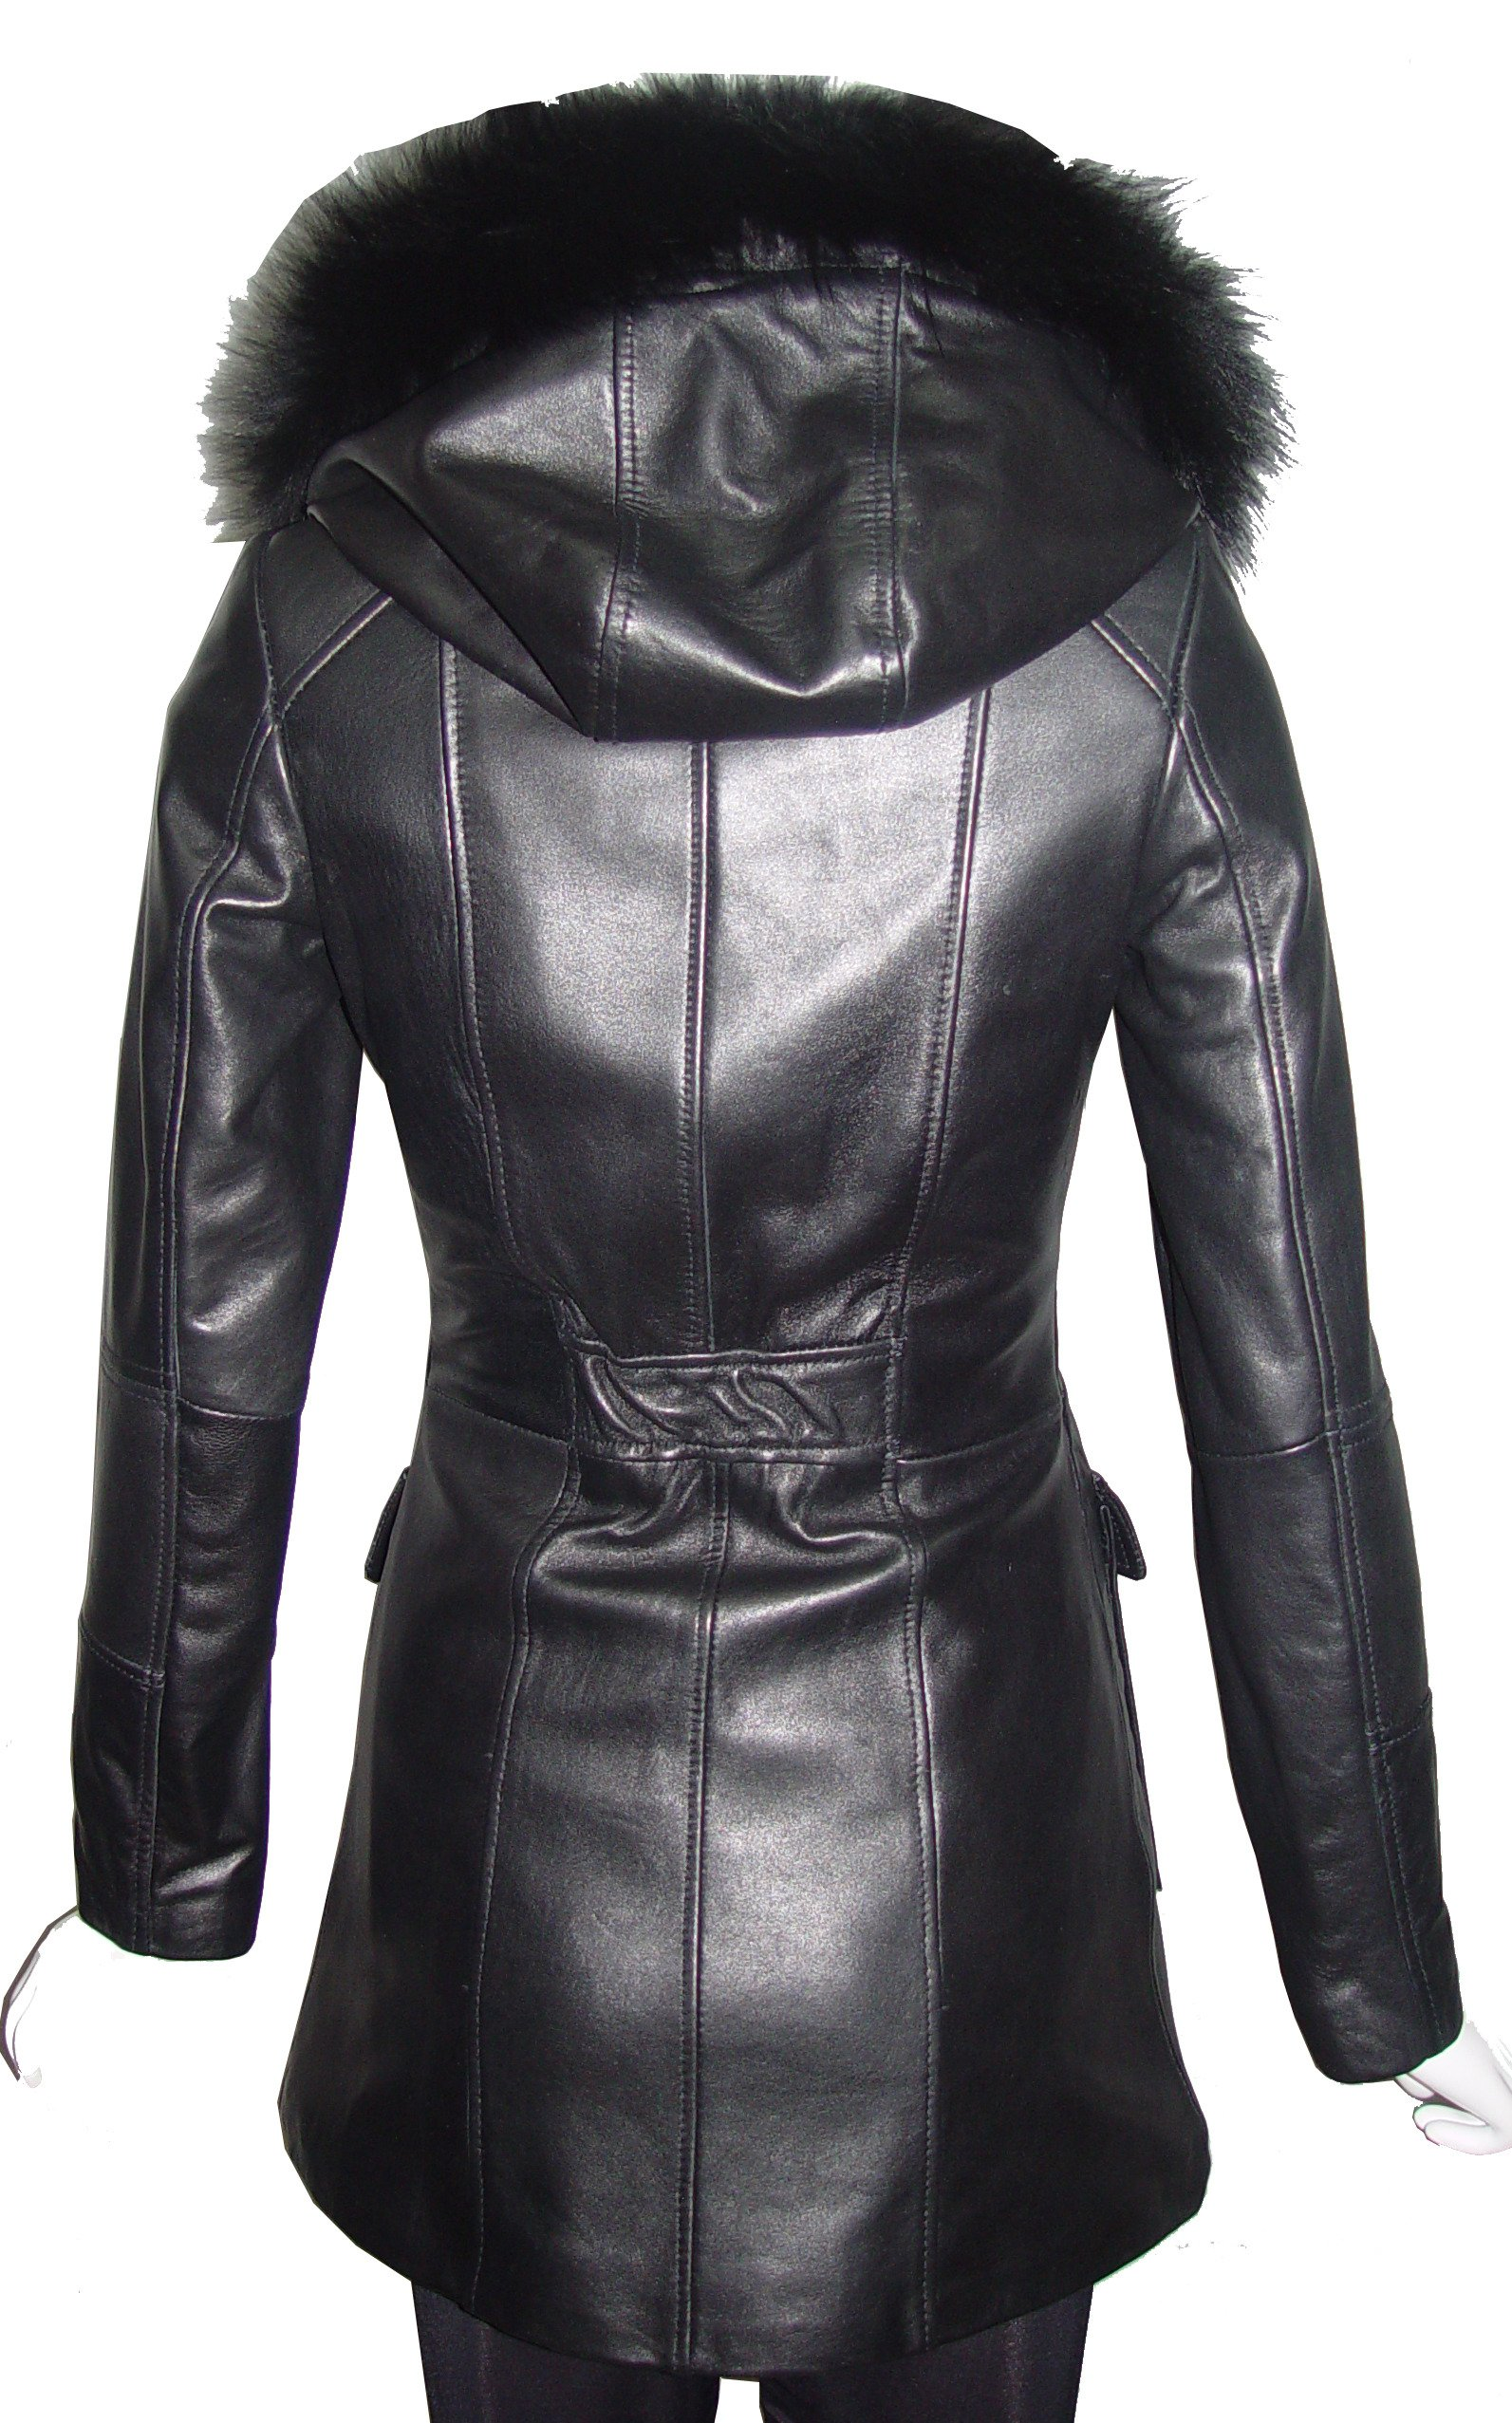 Paccilo 4 Season Wear Womens 4177 PETITE & ALL SIZELambskin Leather Parka Jacket by Paccilo (Image #5)